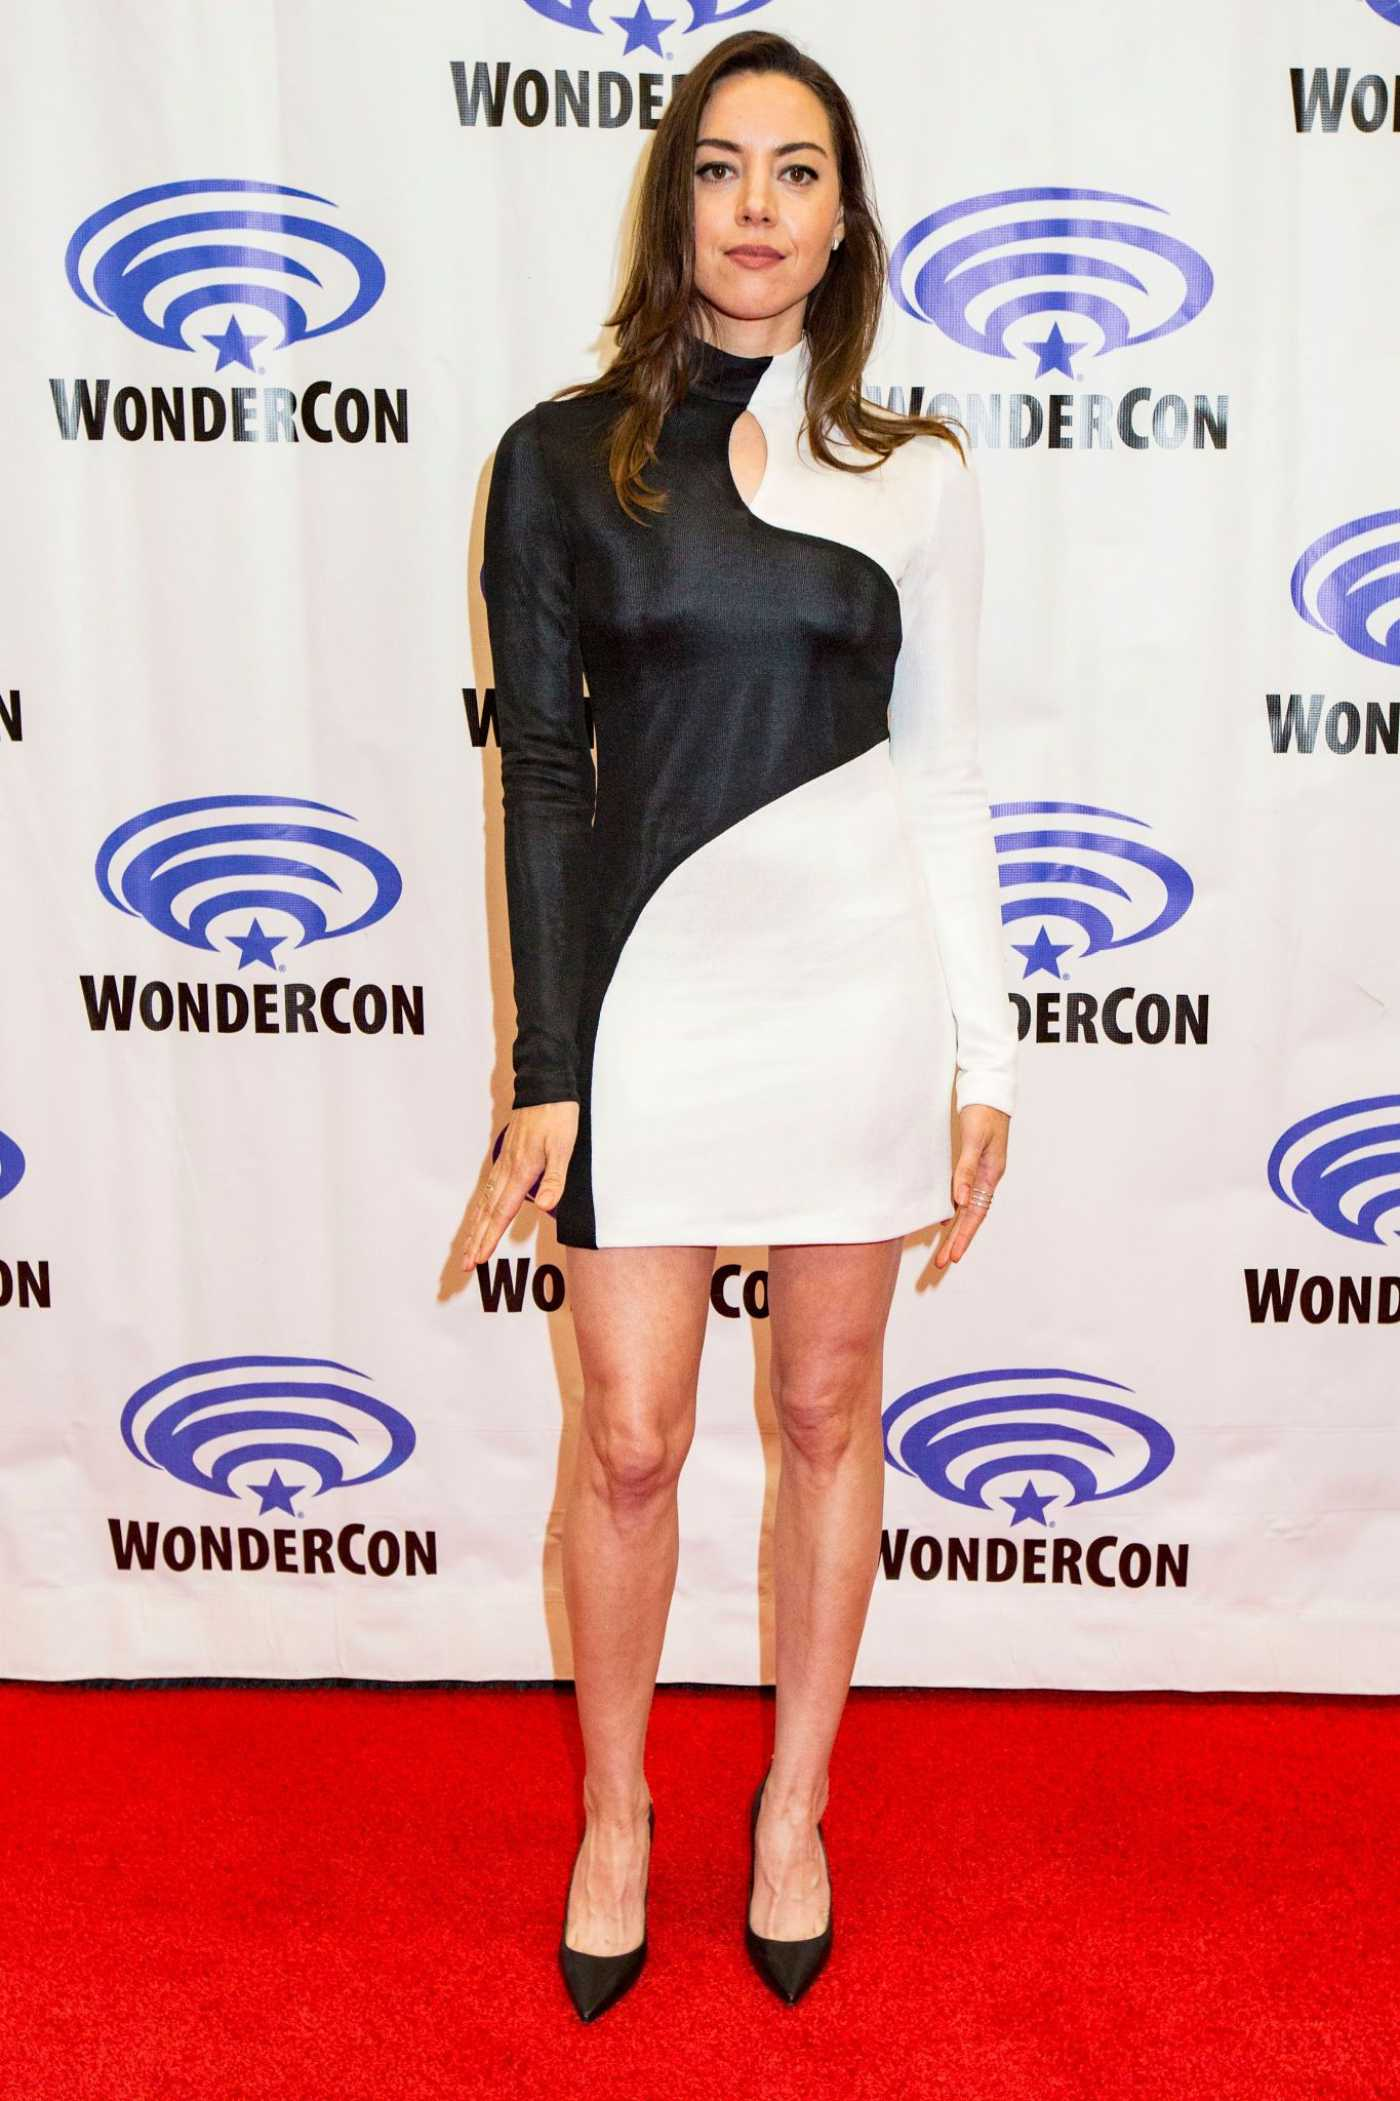 Aubrey Plaza Attends the Legion Photo Call During 2019 WonderCon in Anaheim 03/29/2019